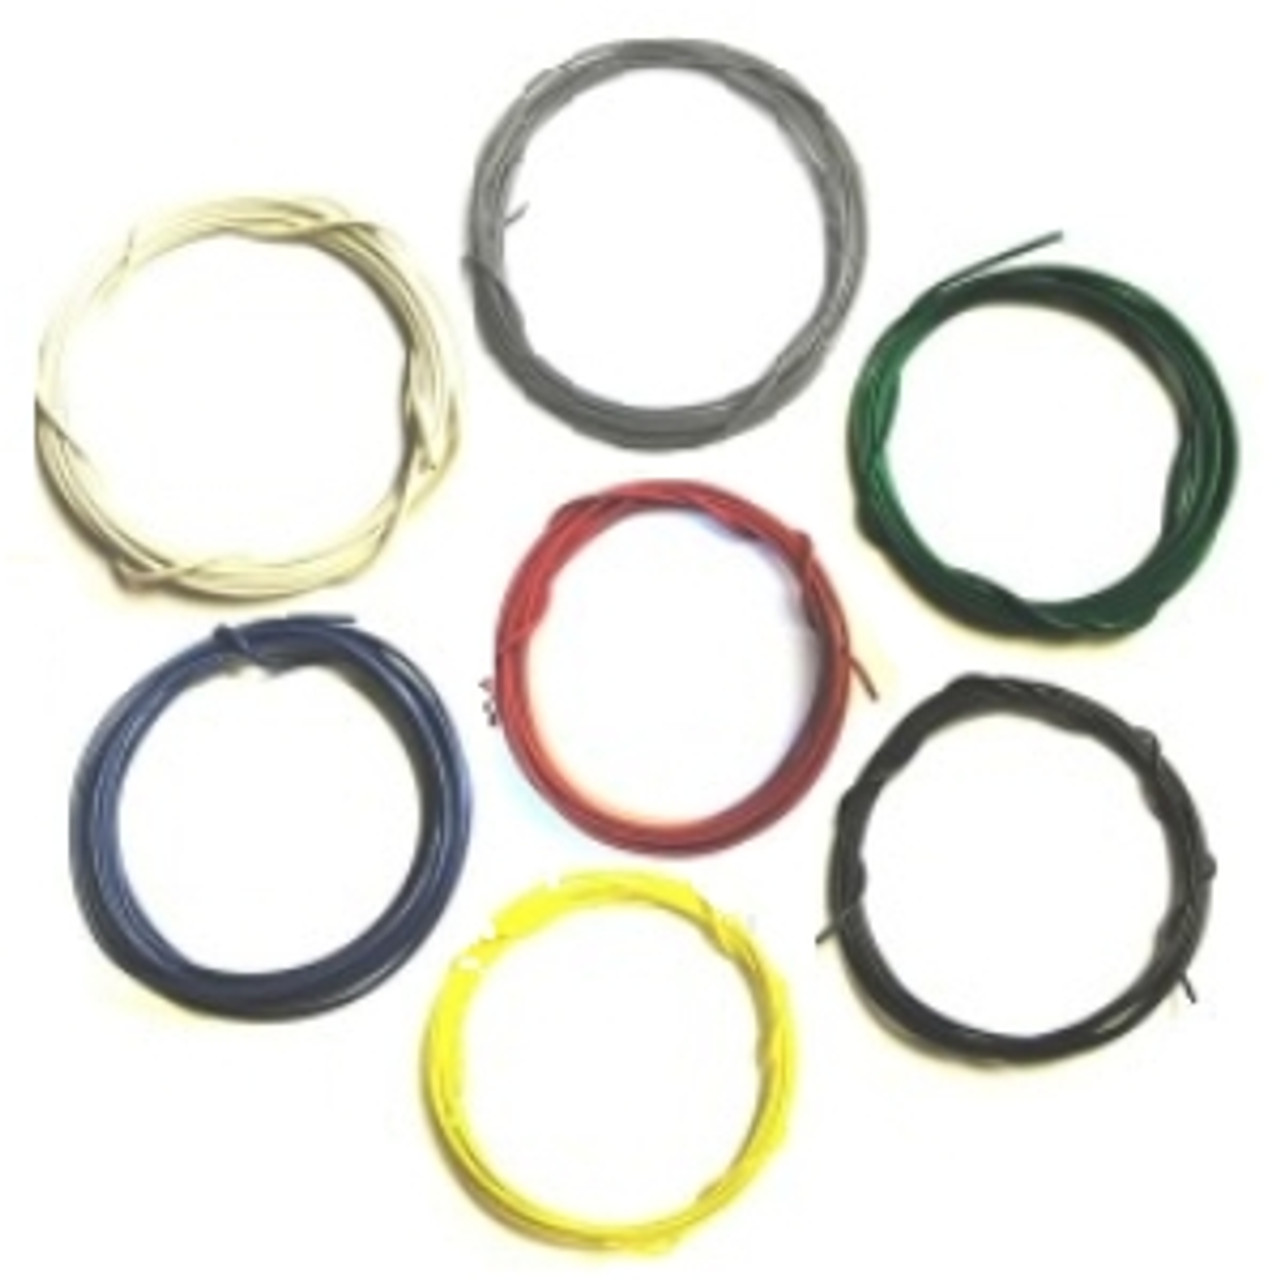 26 Gauge Wire >> Stranded 26 Gauge Guitar Circuit Wire Bulk Pack 7 Colors